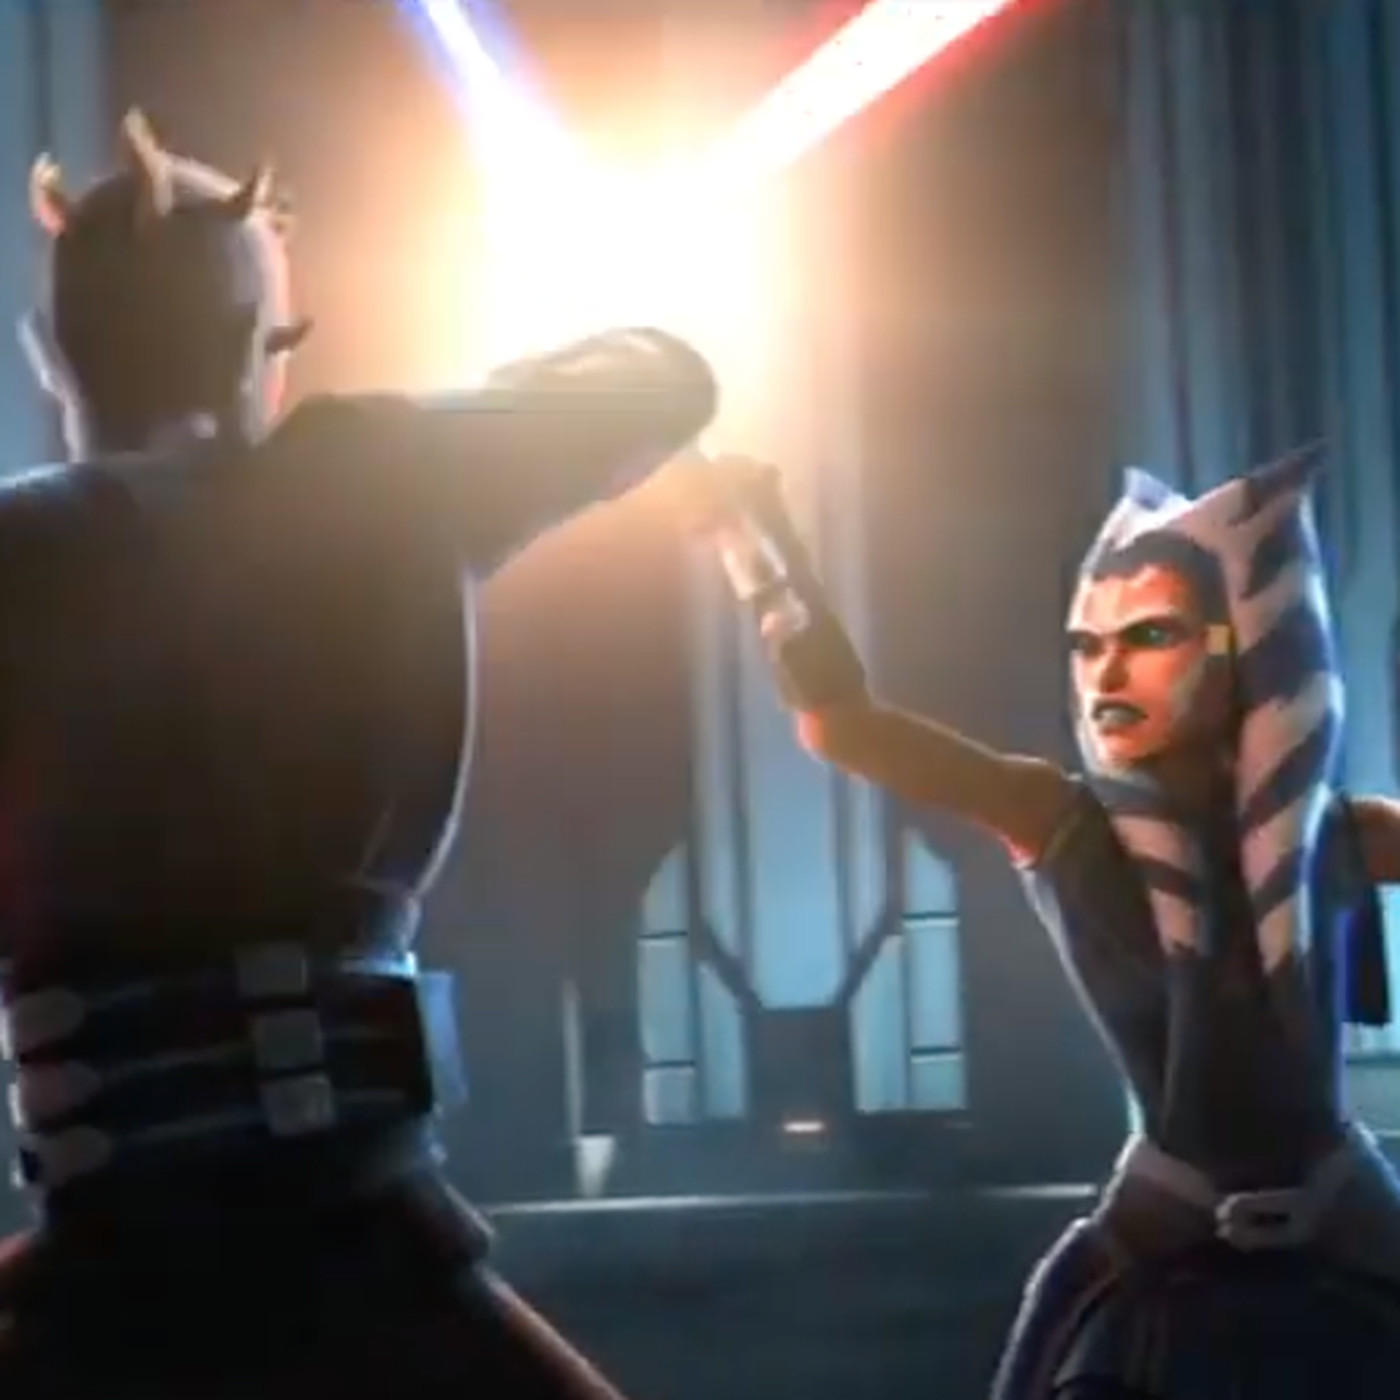 Star Wars: The Clone Wars season 7 trailer: Ahsoka & Anakin